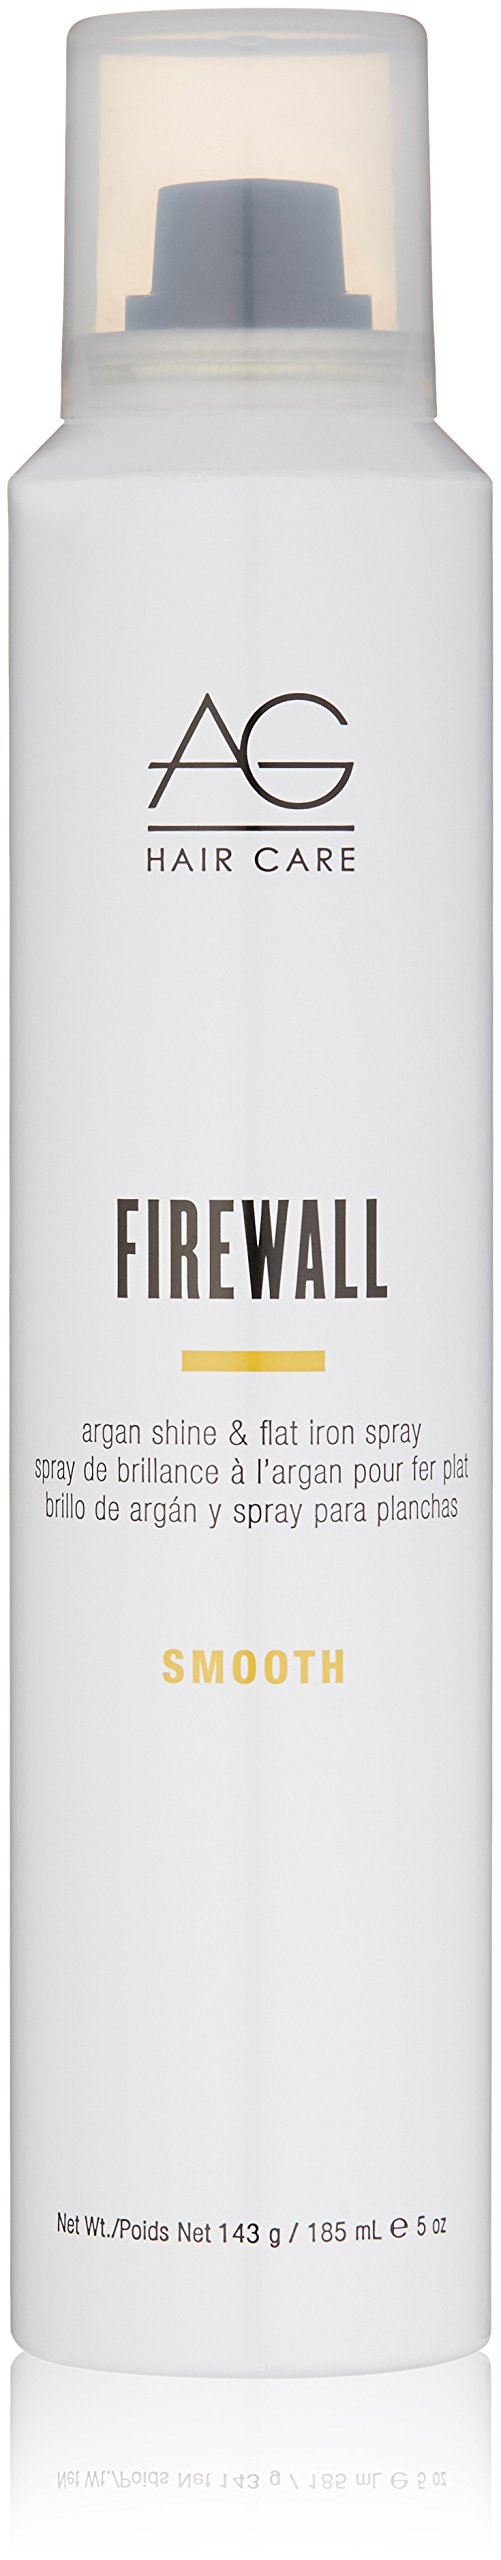 Ag Hair Smooth Firewall Argan Shine Flat Iron Spray 5 Oz